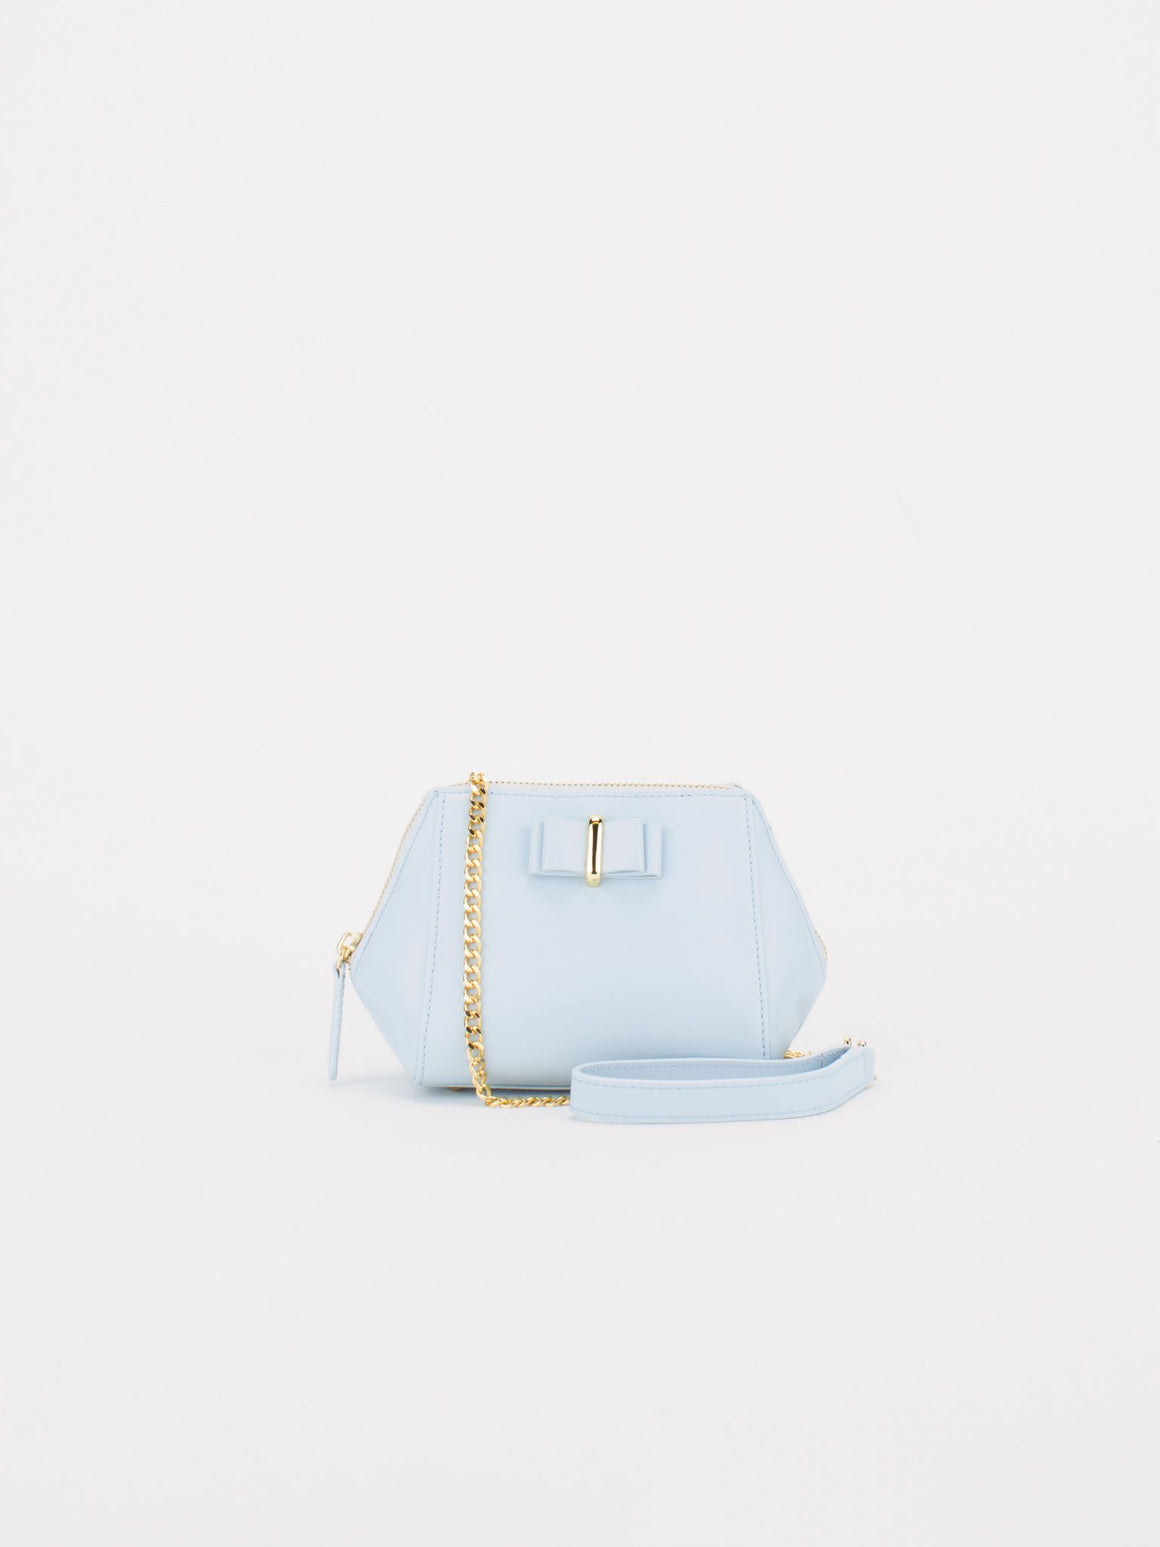 LUCIA Leather Mini Chain Bag - Baby Blue